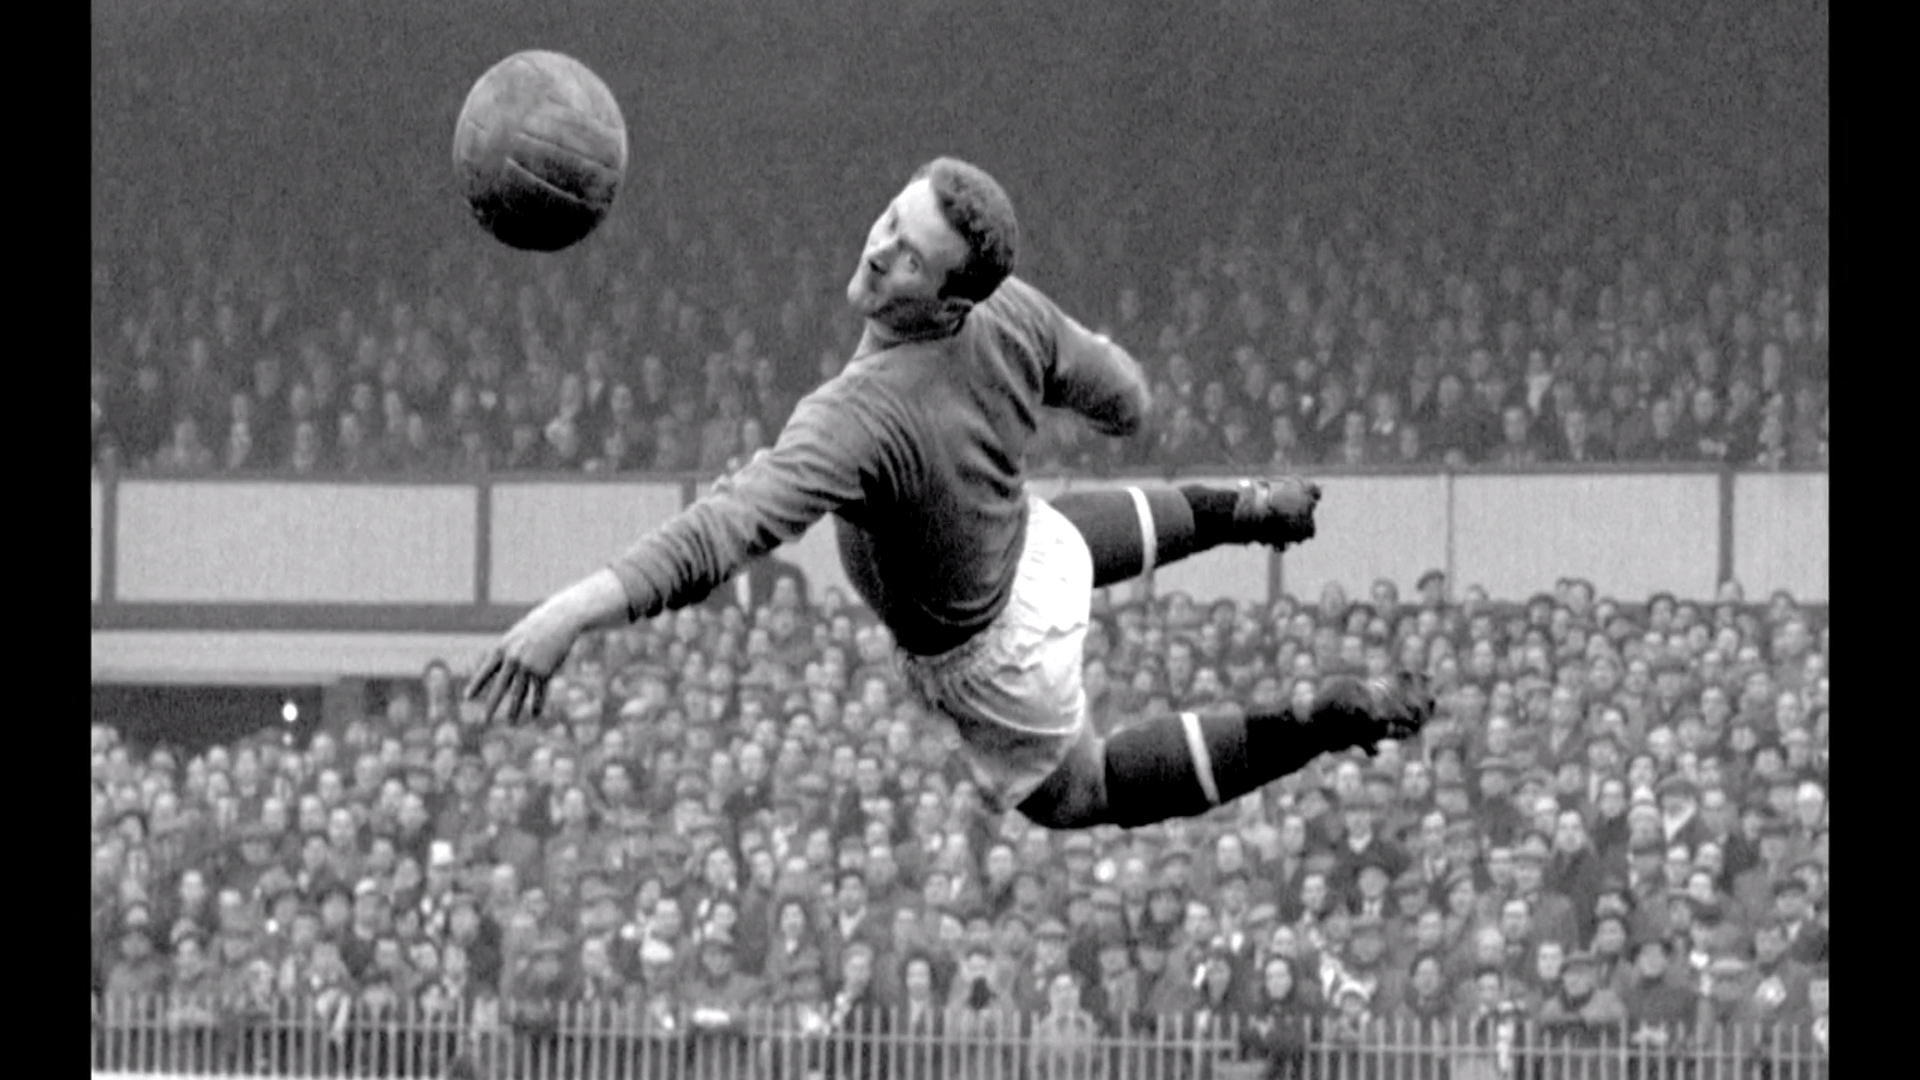 Man Utd Munich hero Harry Gregg dies at 87 - channel 4